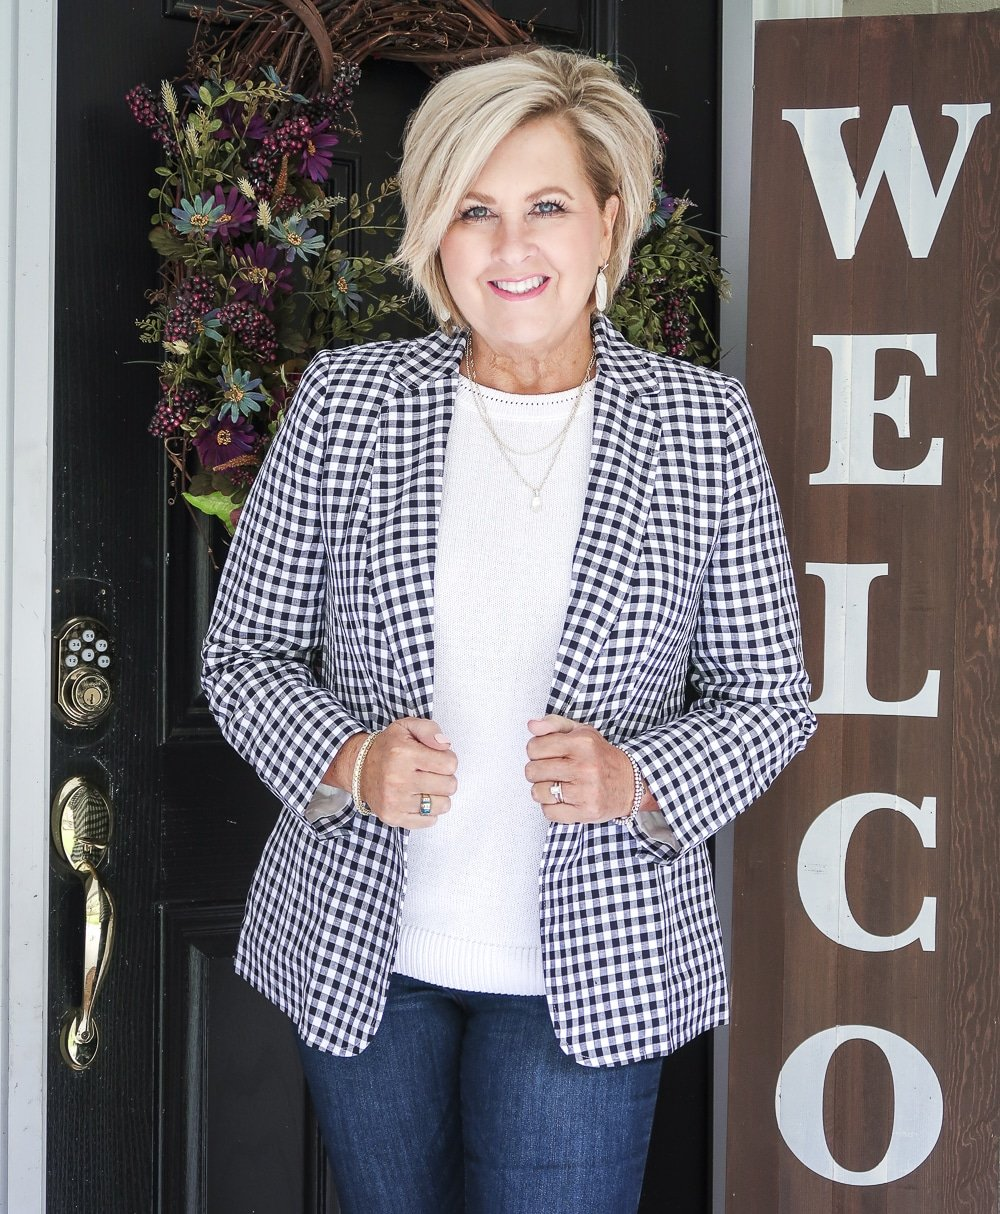 Fashion Blogger 50 Is Not Old is wearing a white sweater and a gingham blazer